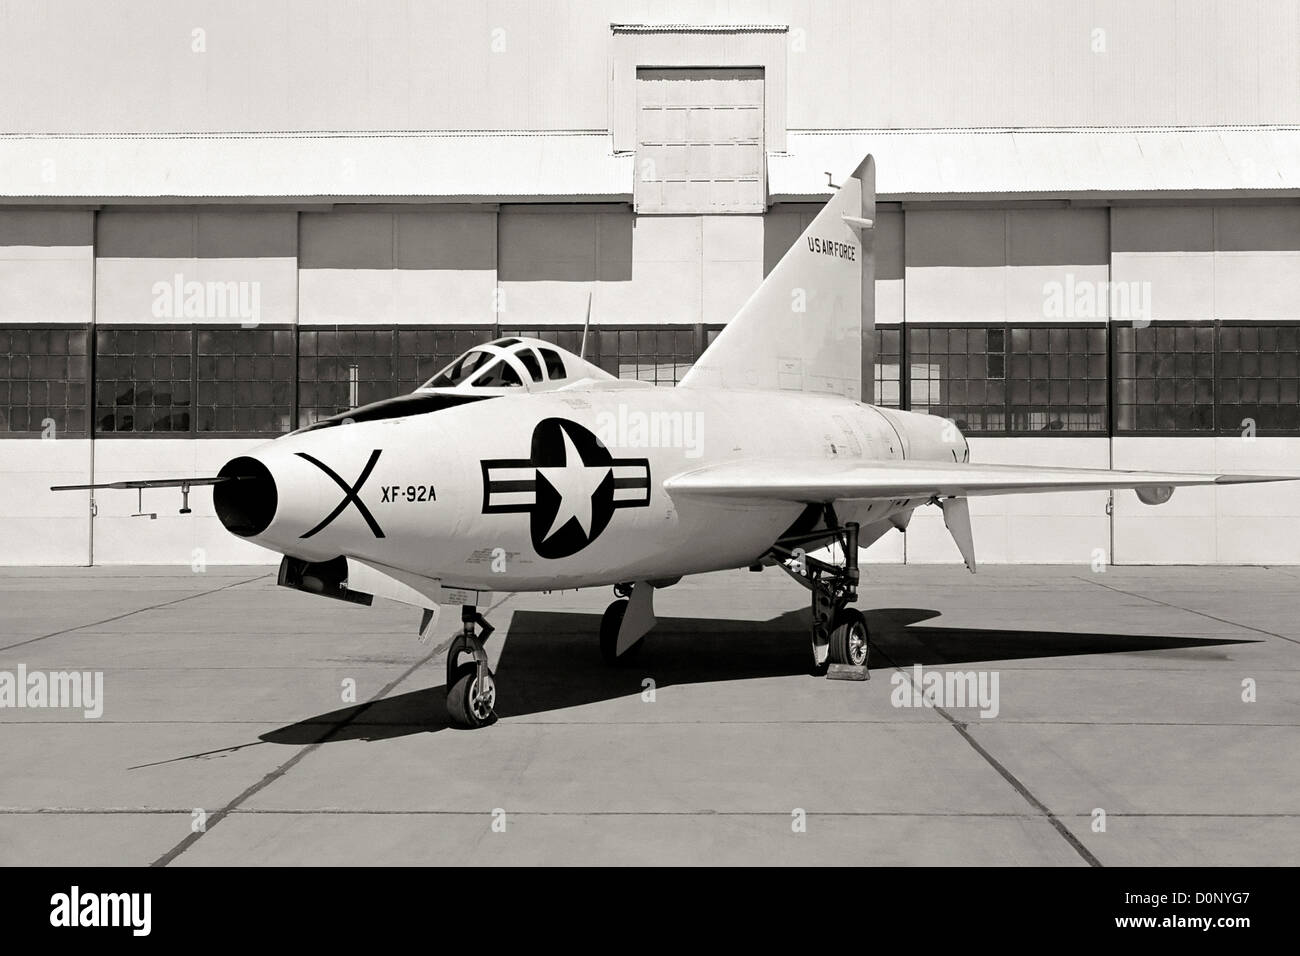 XF-92A Dart and Hanger - Stock Image